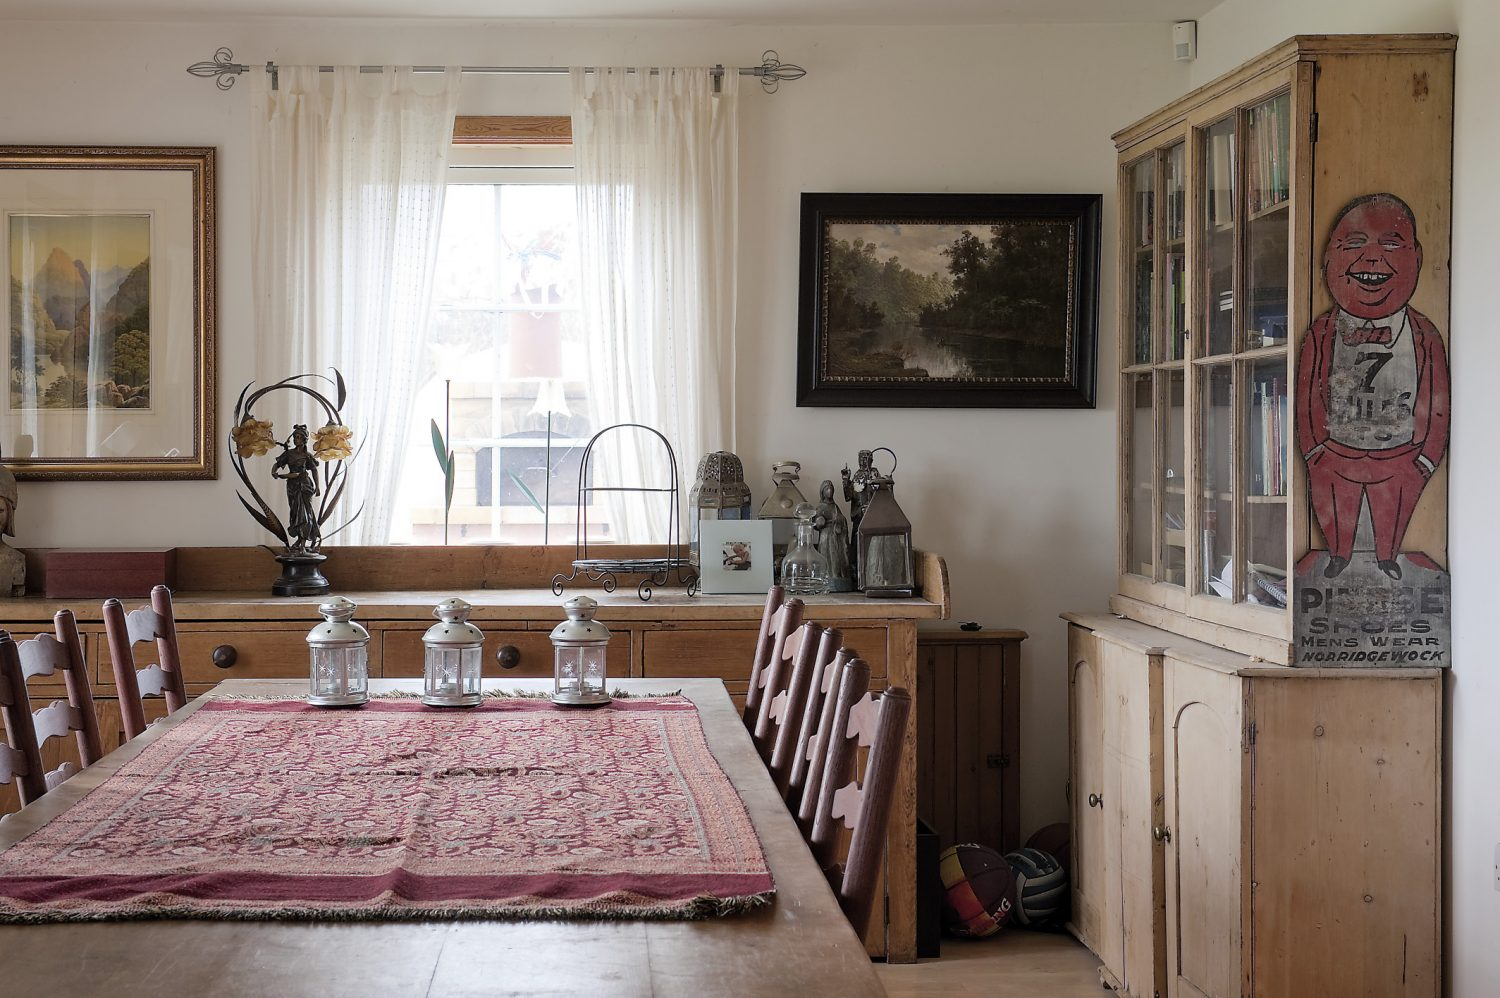 A large table in the open-plan sitting and dining area was commissioned from a joiner at The Old Forge in Appledore, and is home to a few quirky collectables – such as a bacon slicer and a tin man advertising a downtown shoe shop somewhere in the American Midwest